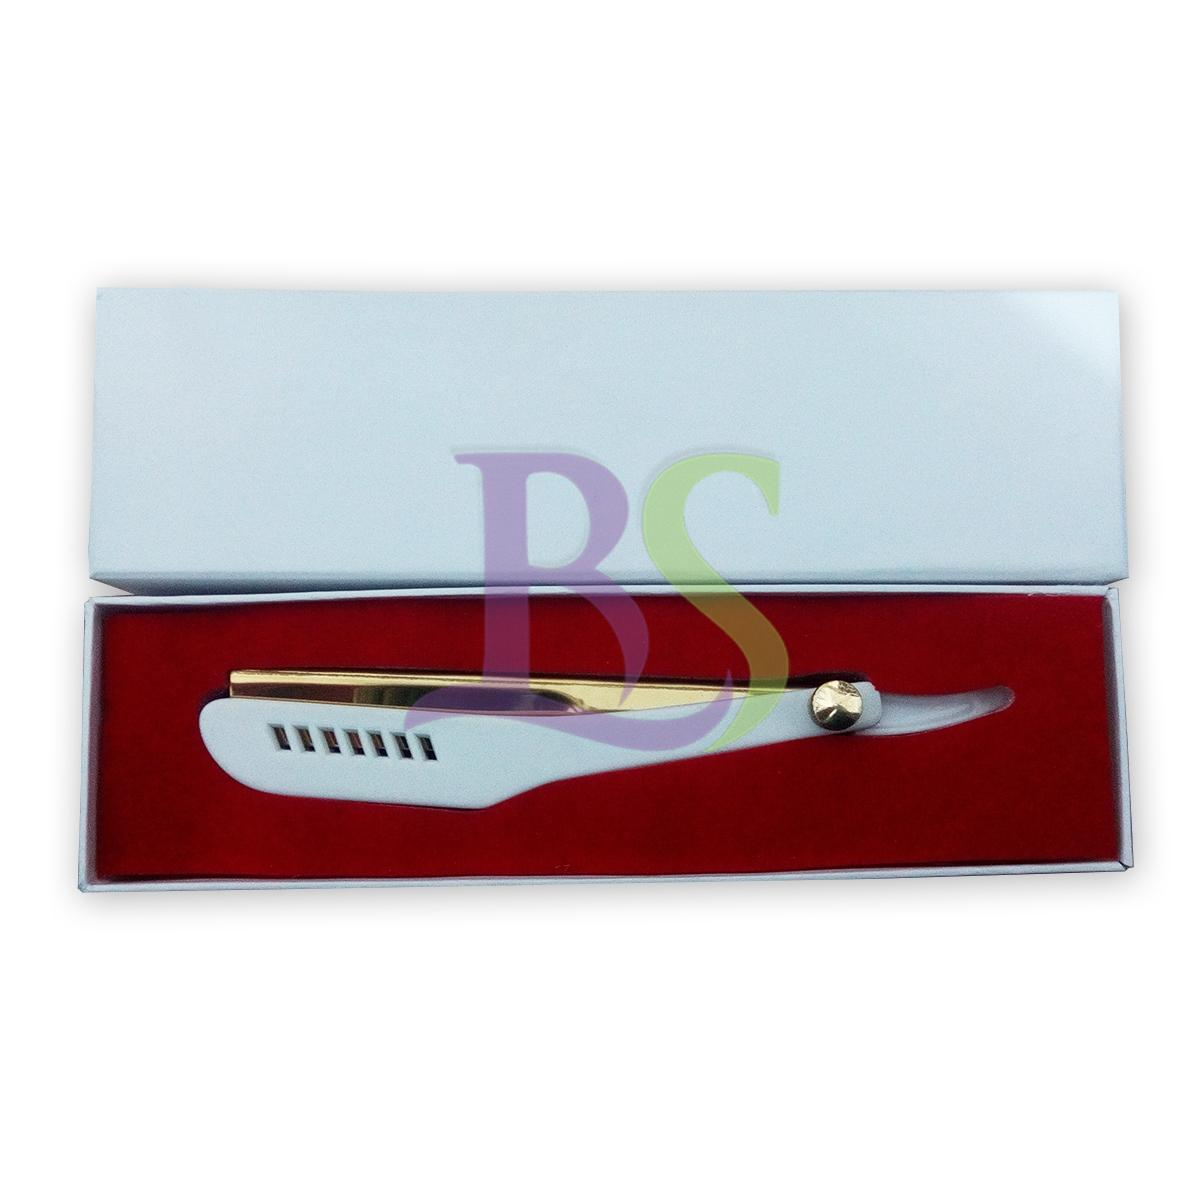 Card Boxes | Beauty Instruments Manufacturers and Suppliers in Sialkot